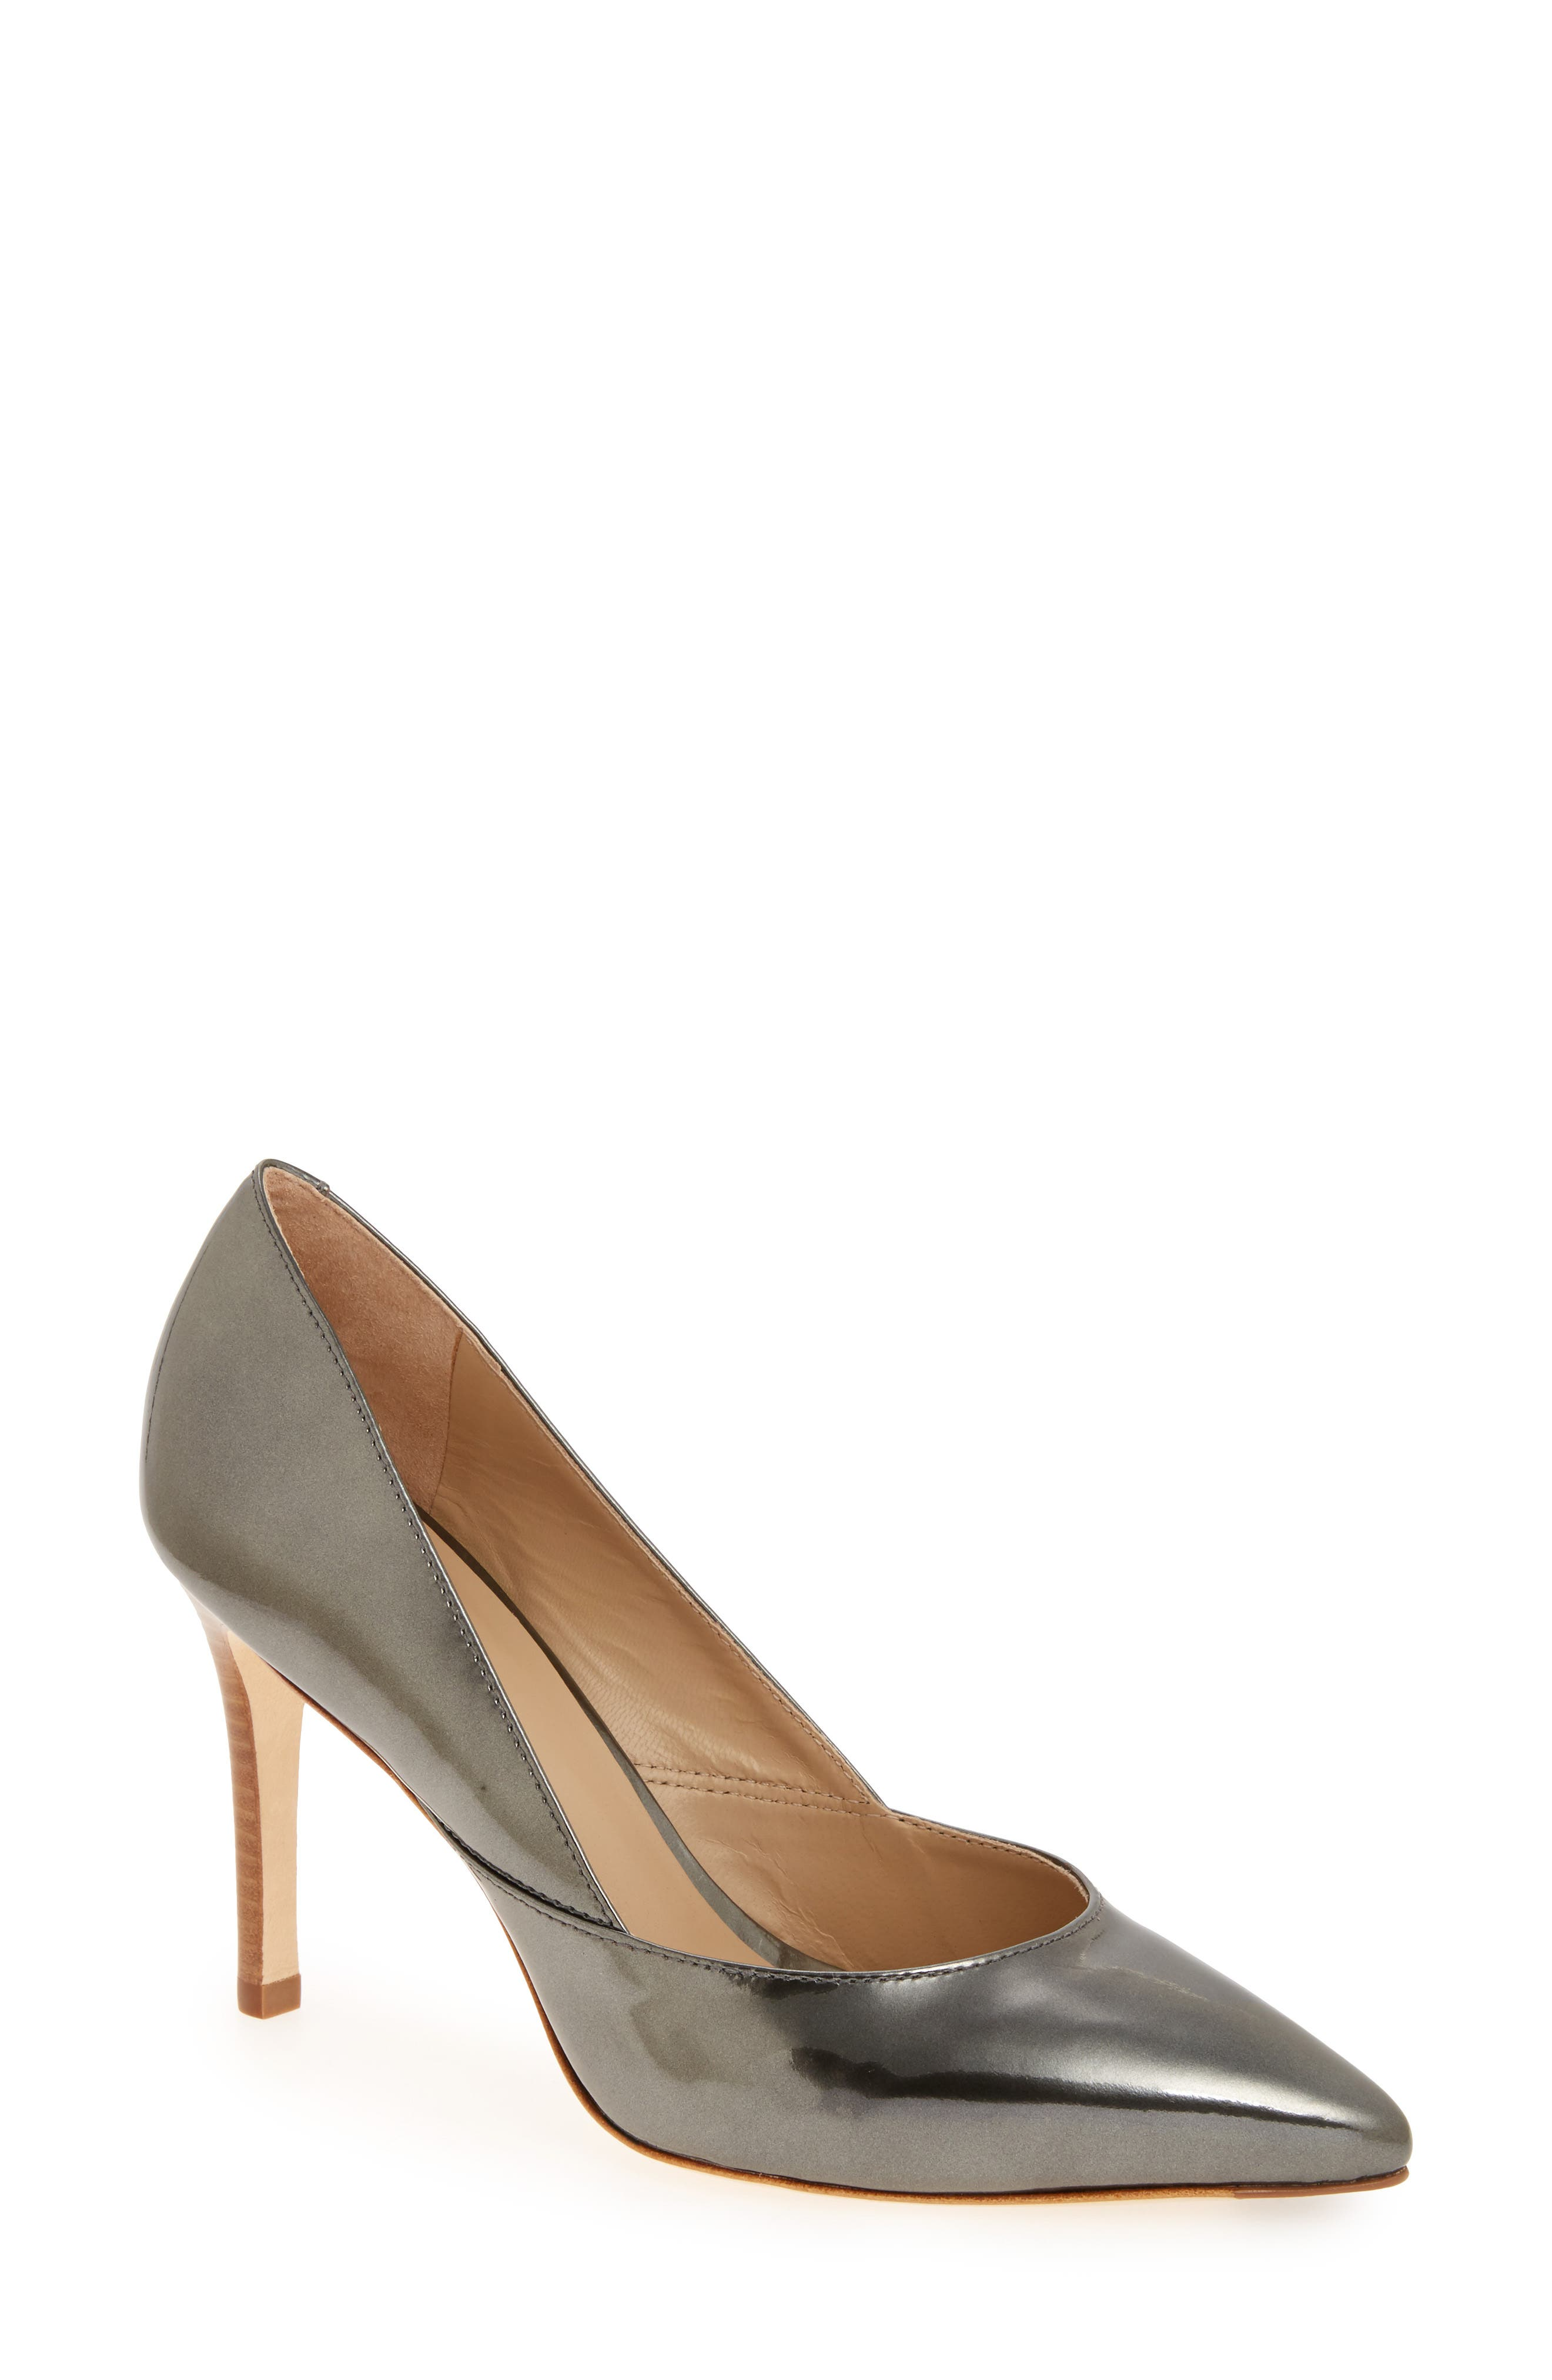 'Vanessa' Pointy Toe Leather Pump,                             Main thumbnail 4, color,